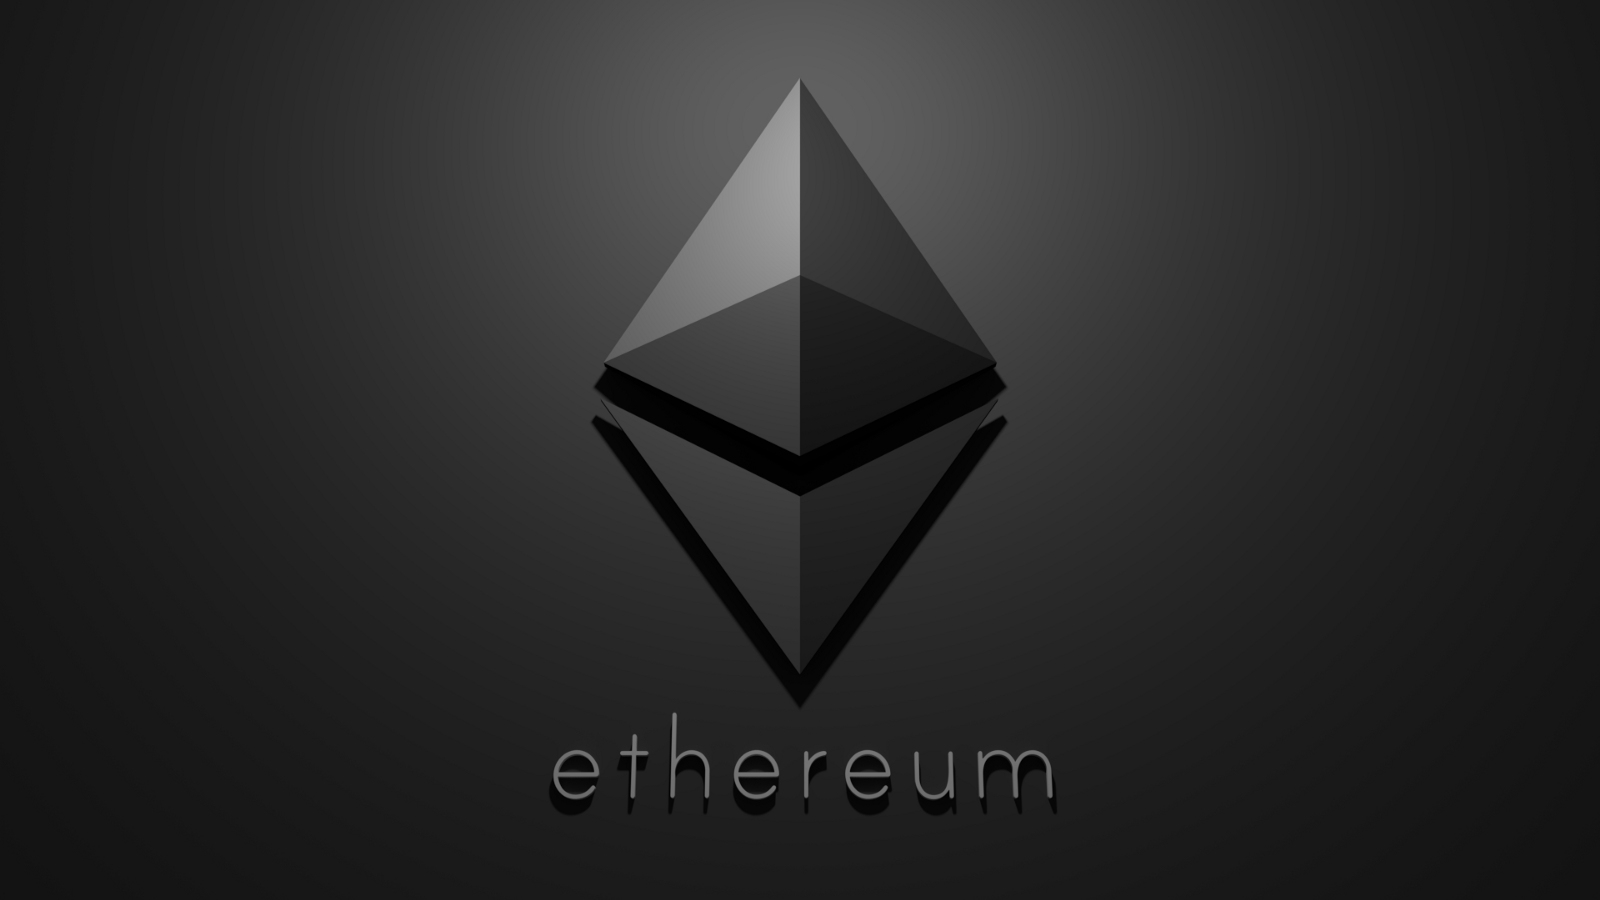 Ethereum (ETH) long portfolio (for 6-12 months)